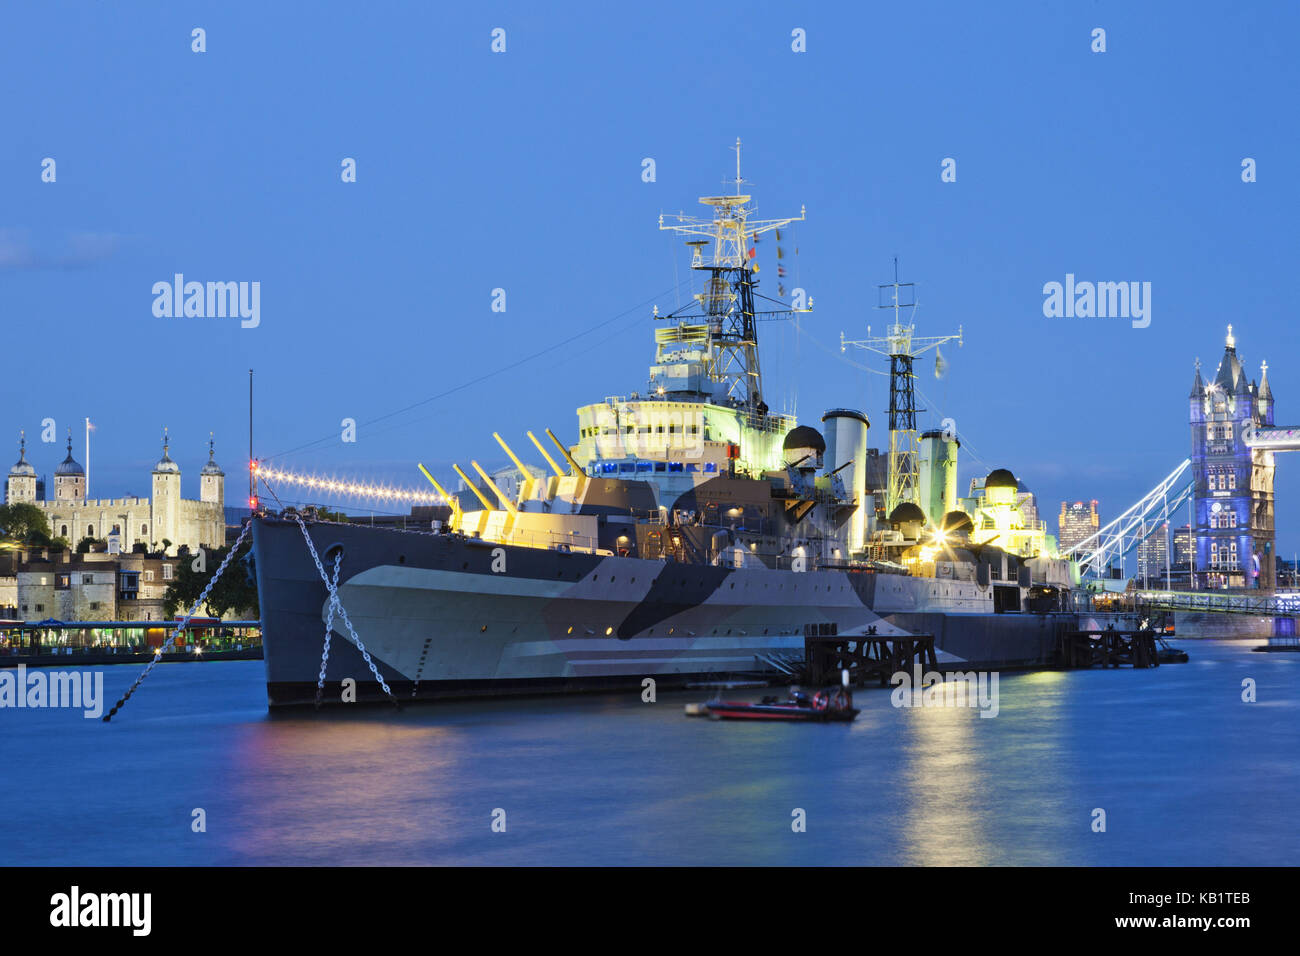 England, London, Southwark, war museum, was illuminated Imperial museum, warship Belfast HMS, in the evening, - Stock Image